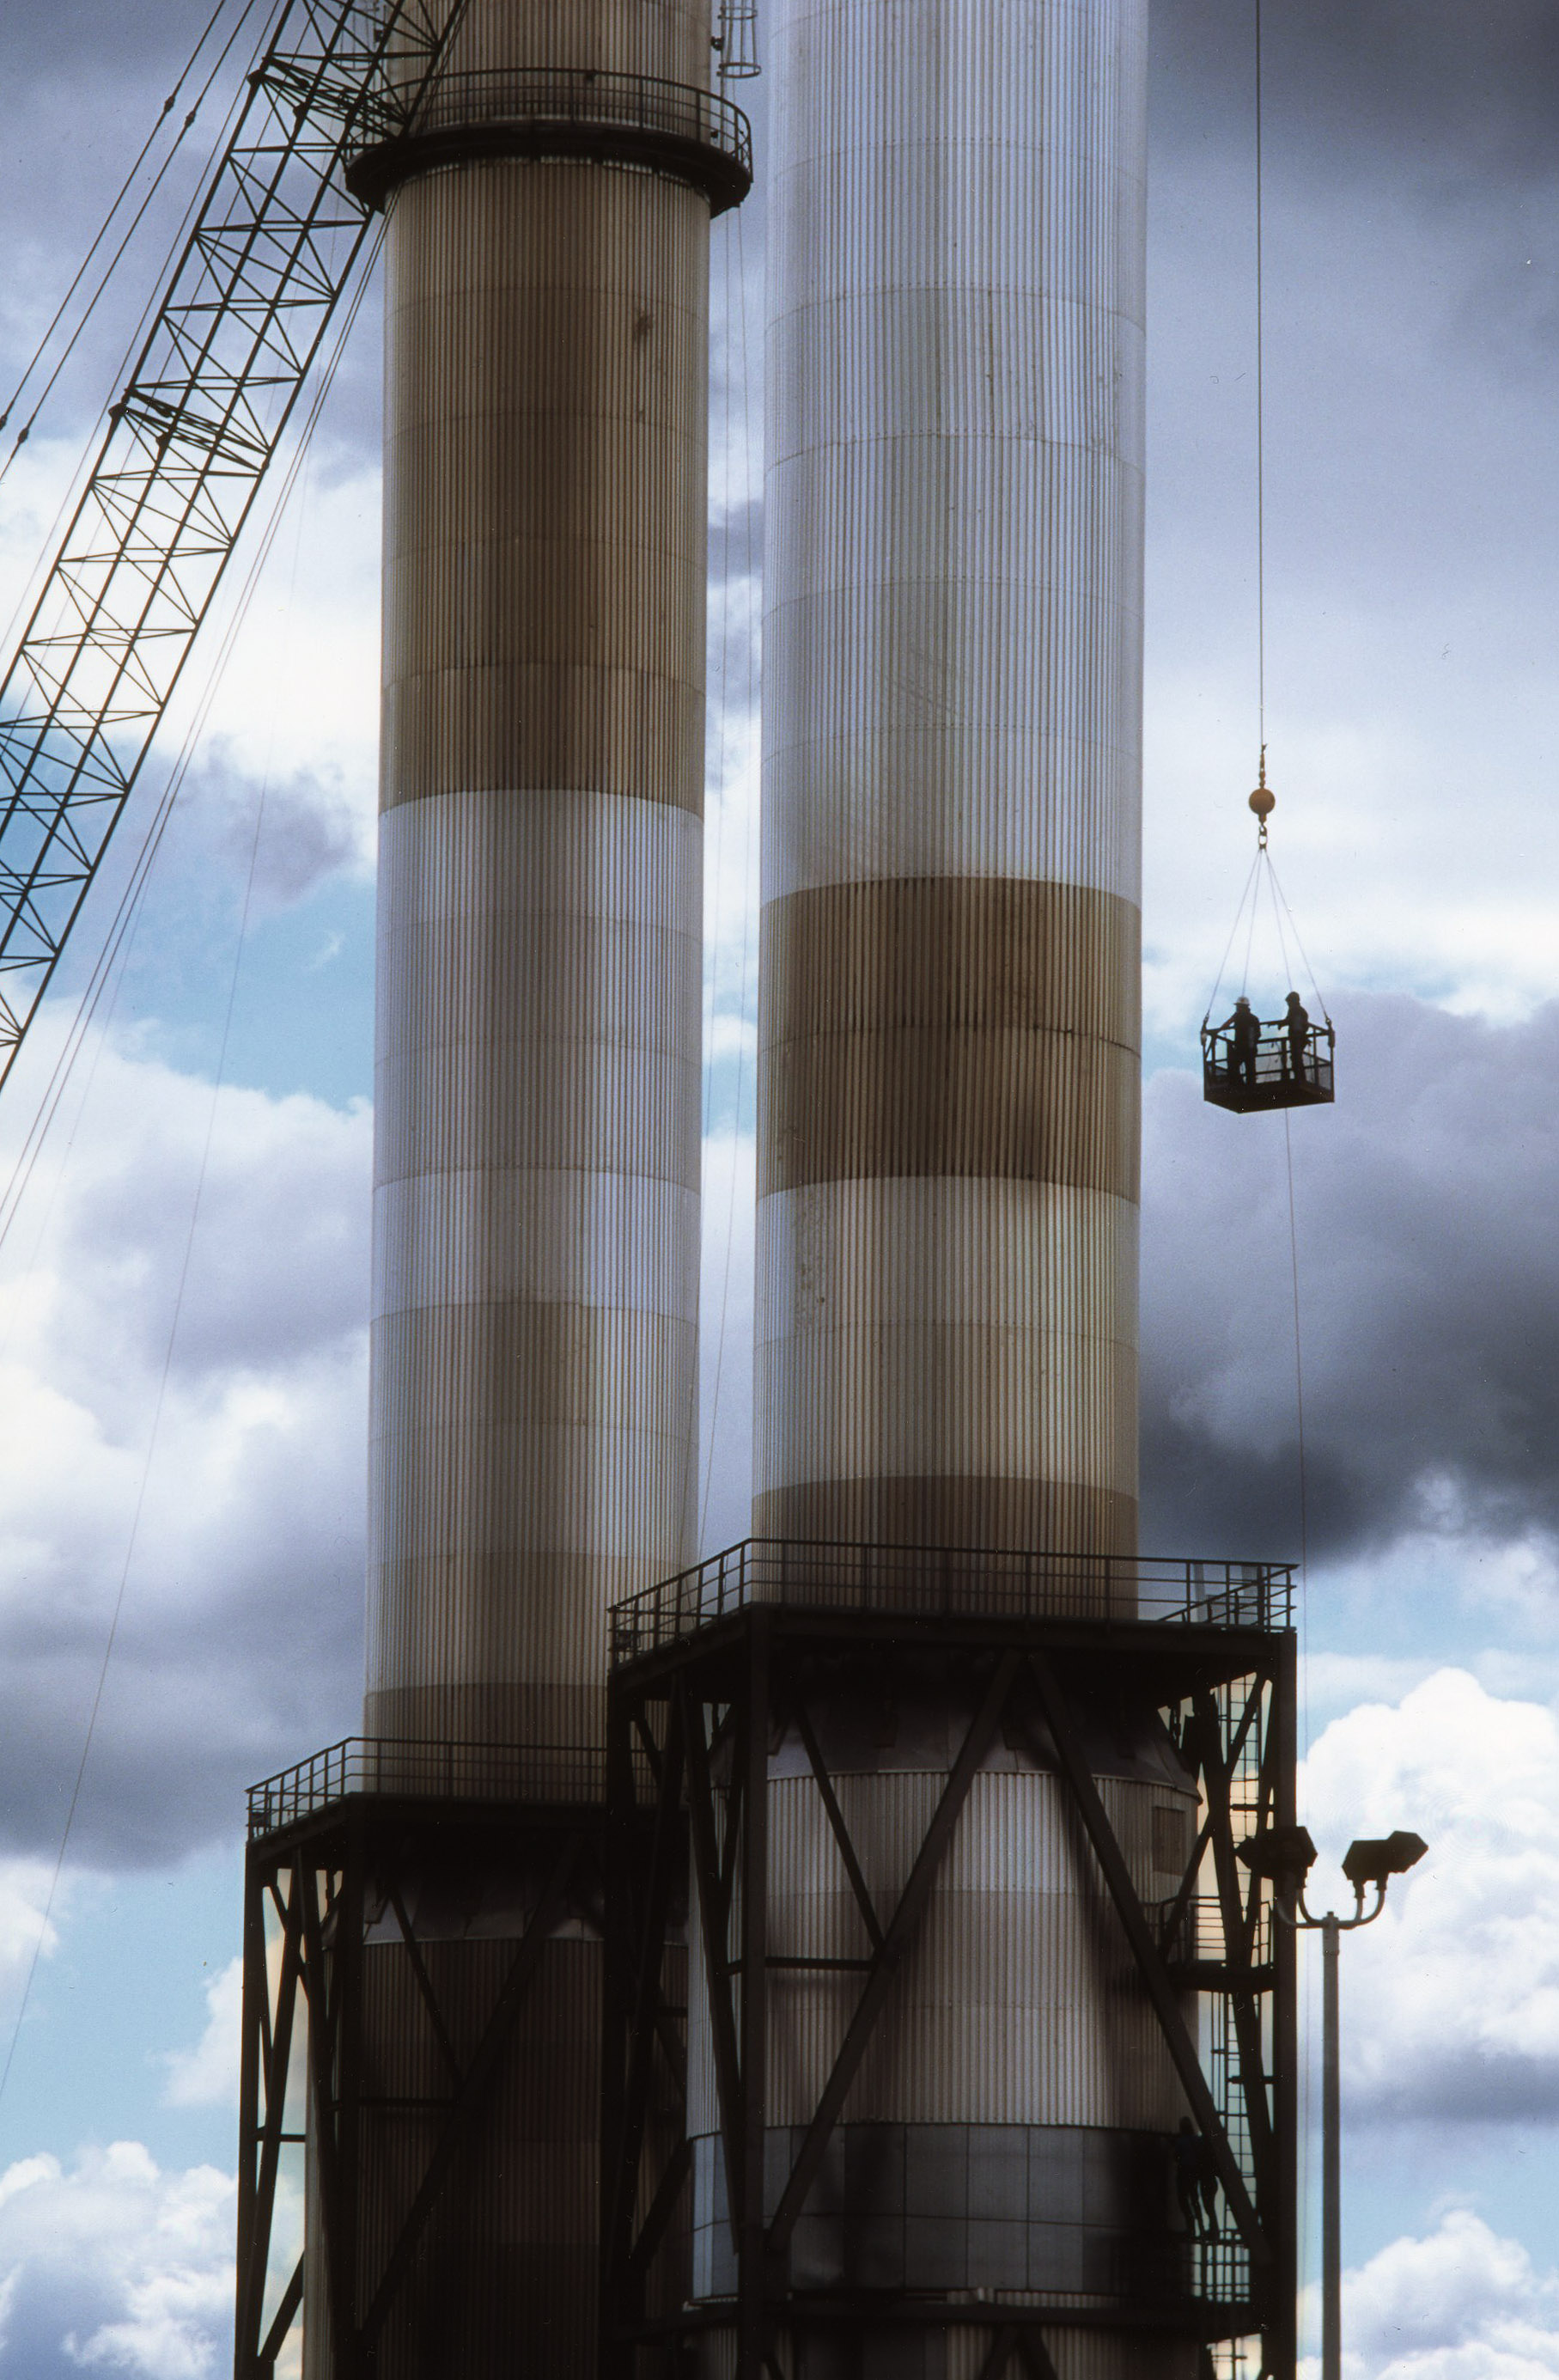 industrial photograph of exhaust towers